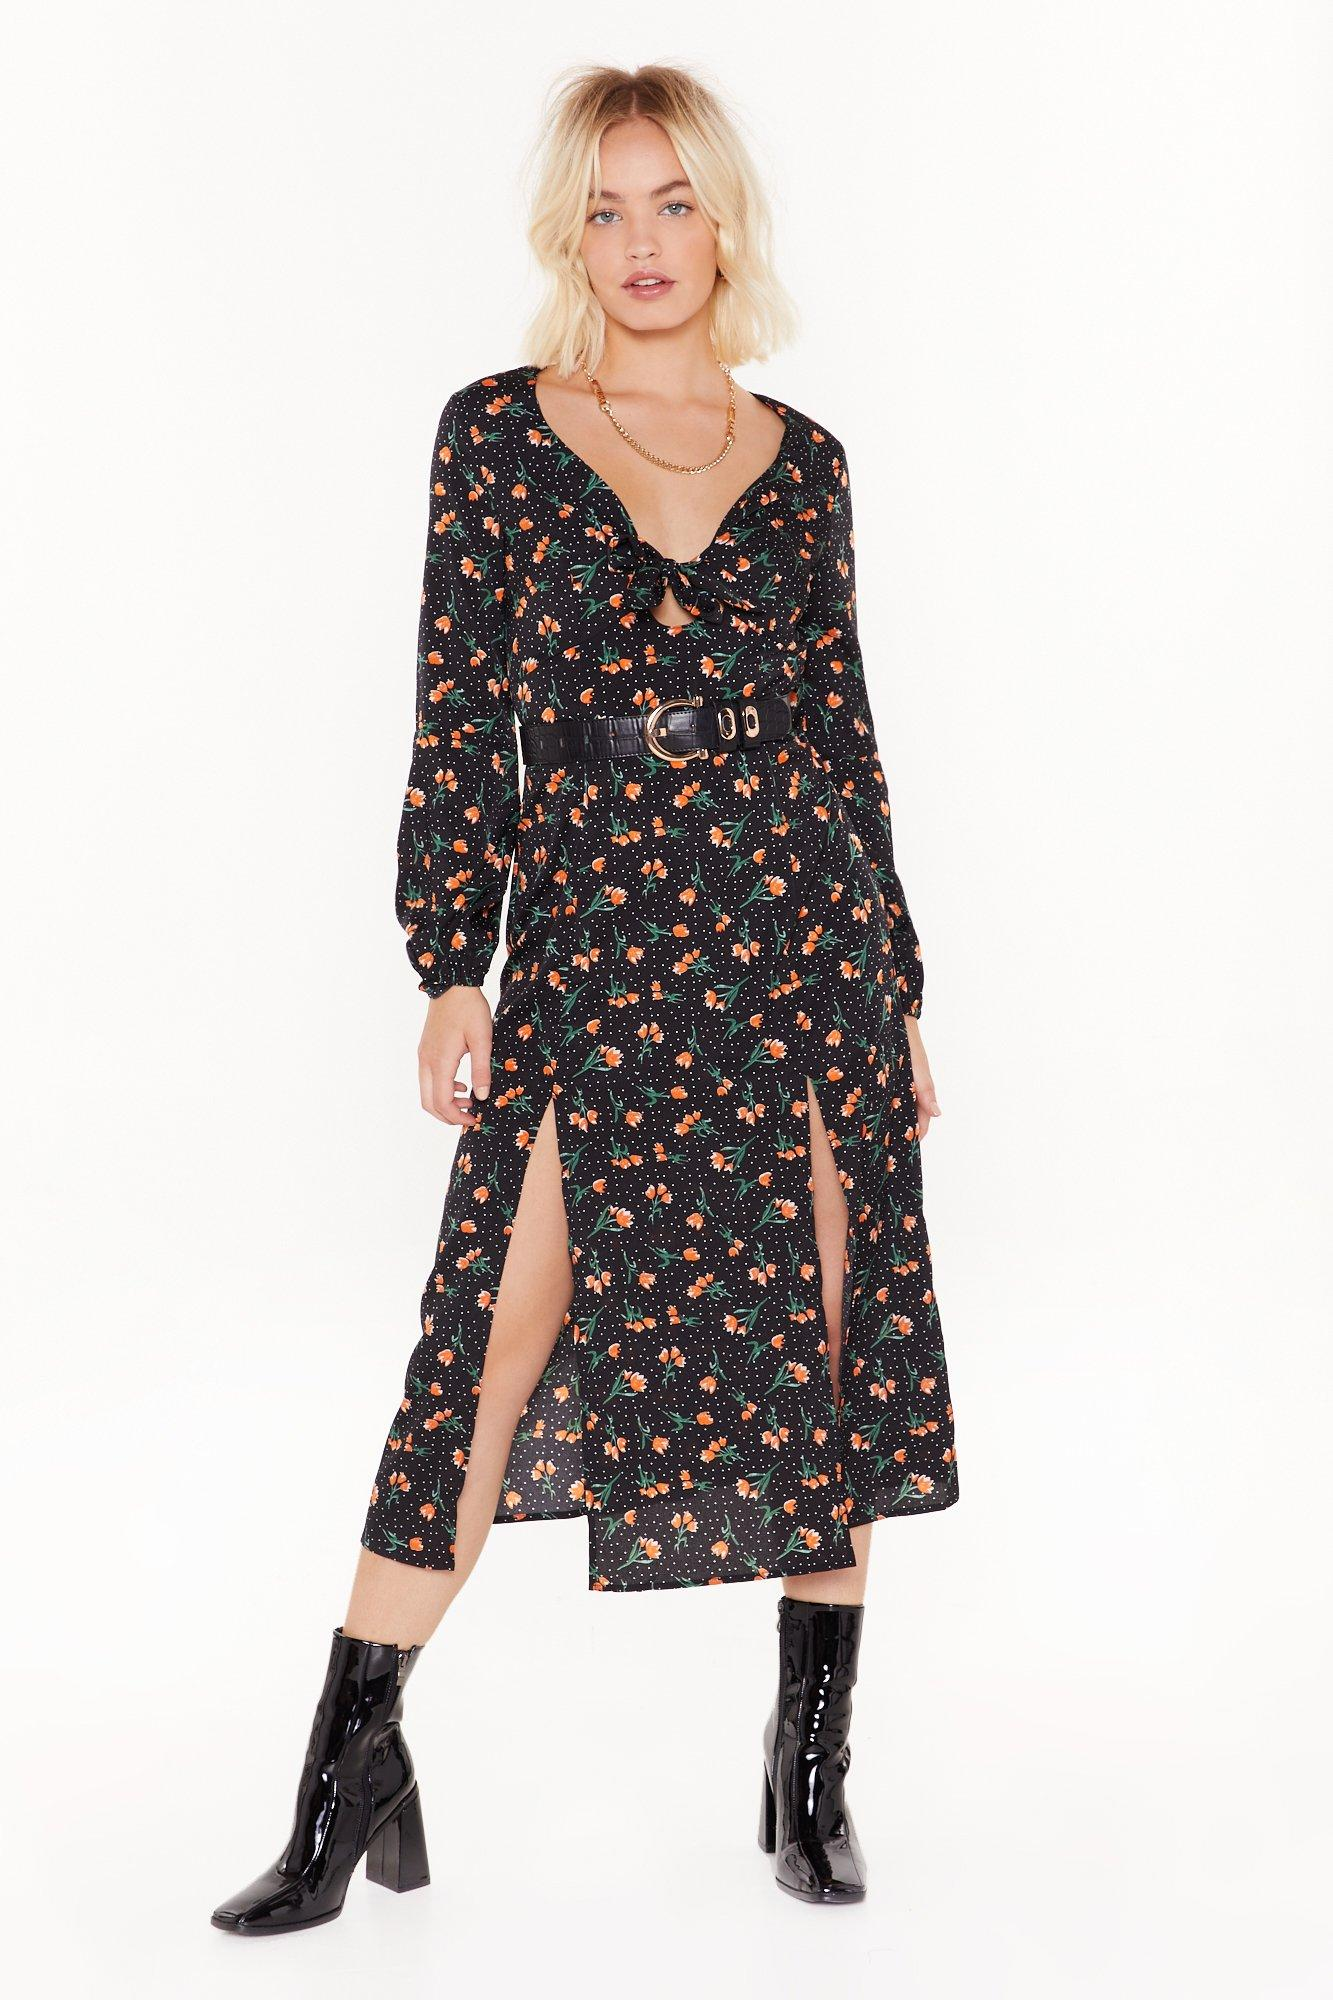 All the Reasons Tie Floral Midi Dress